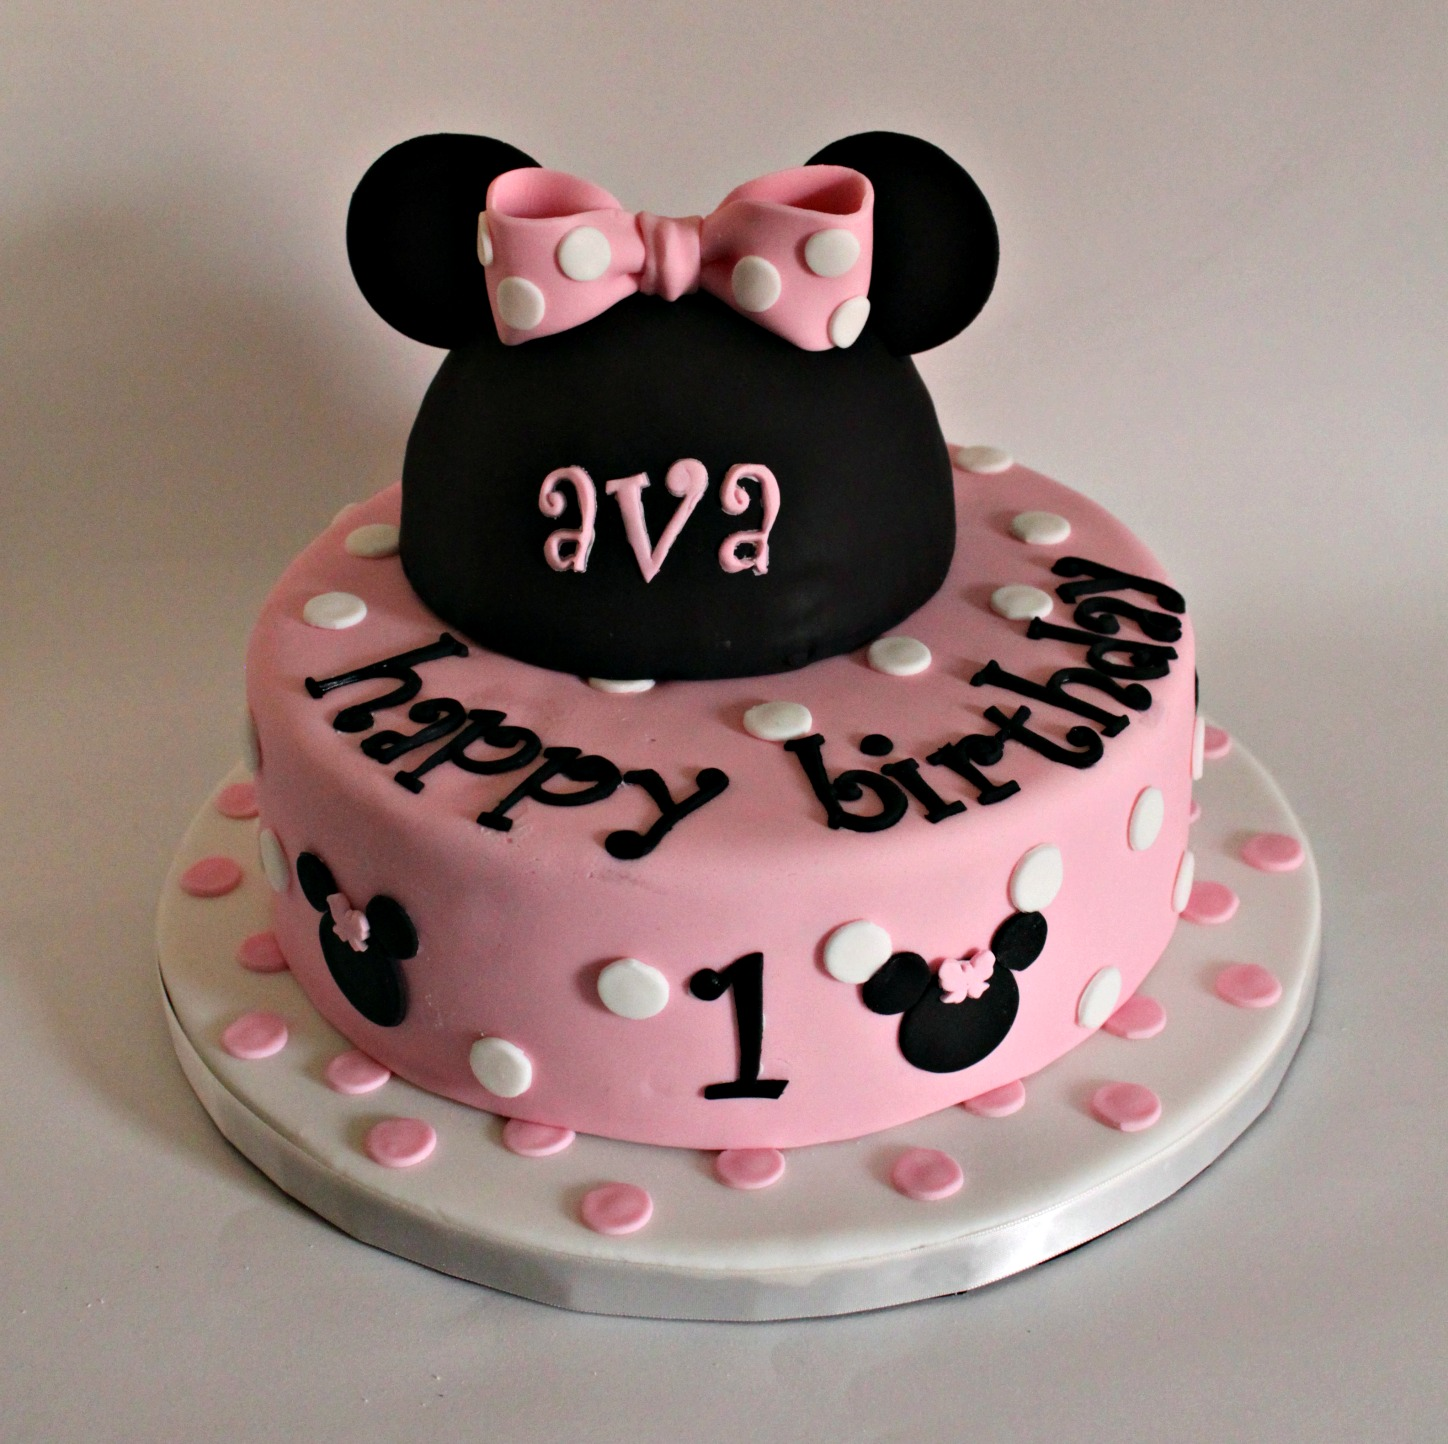 How To Make A Minnie Mouse Cake At Home